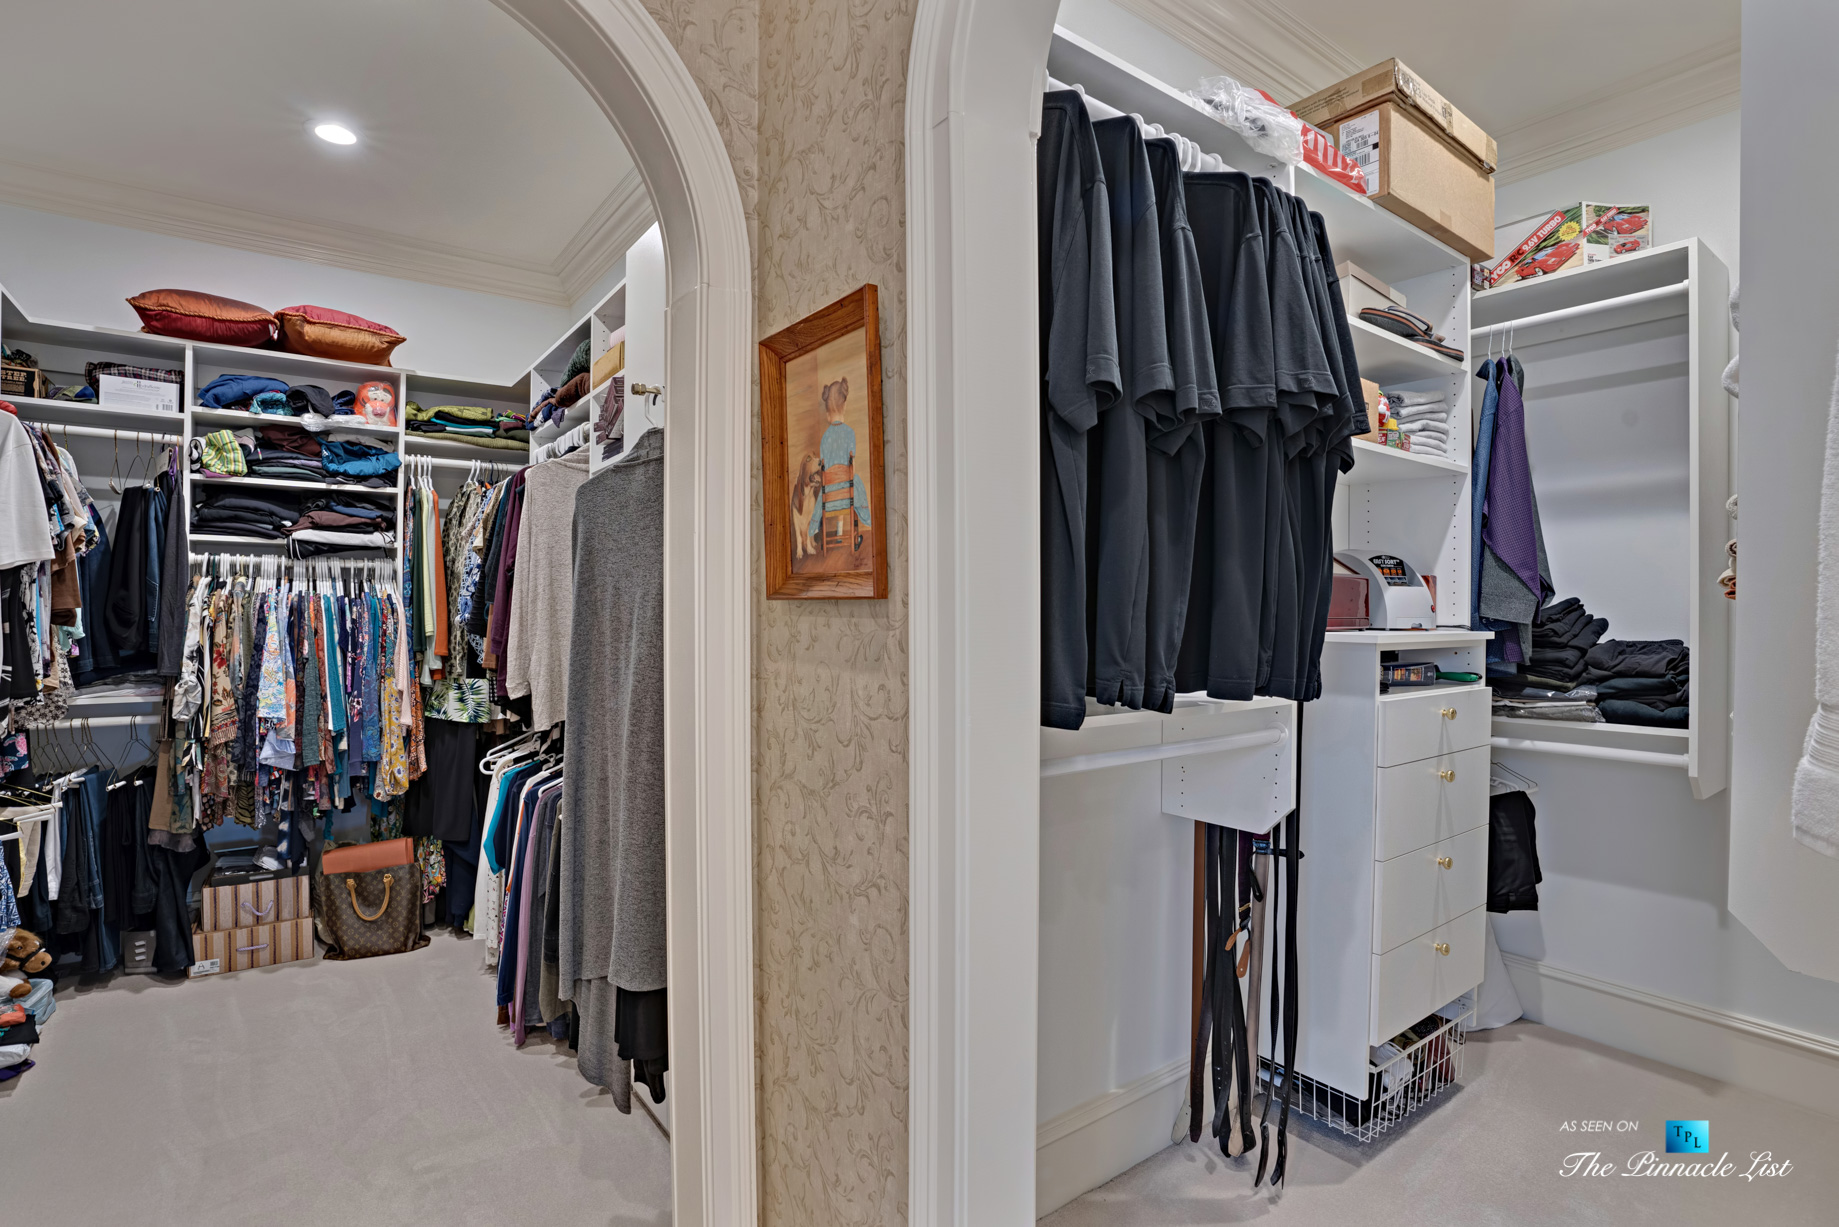 2219 Costley Mill Rd NE, Conyers, GA, USA - Master Bedroom Walk In Closets - Luxury Real Estate - Equestrian Country Home